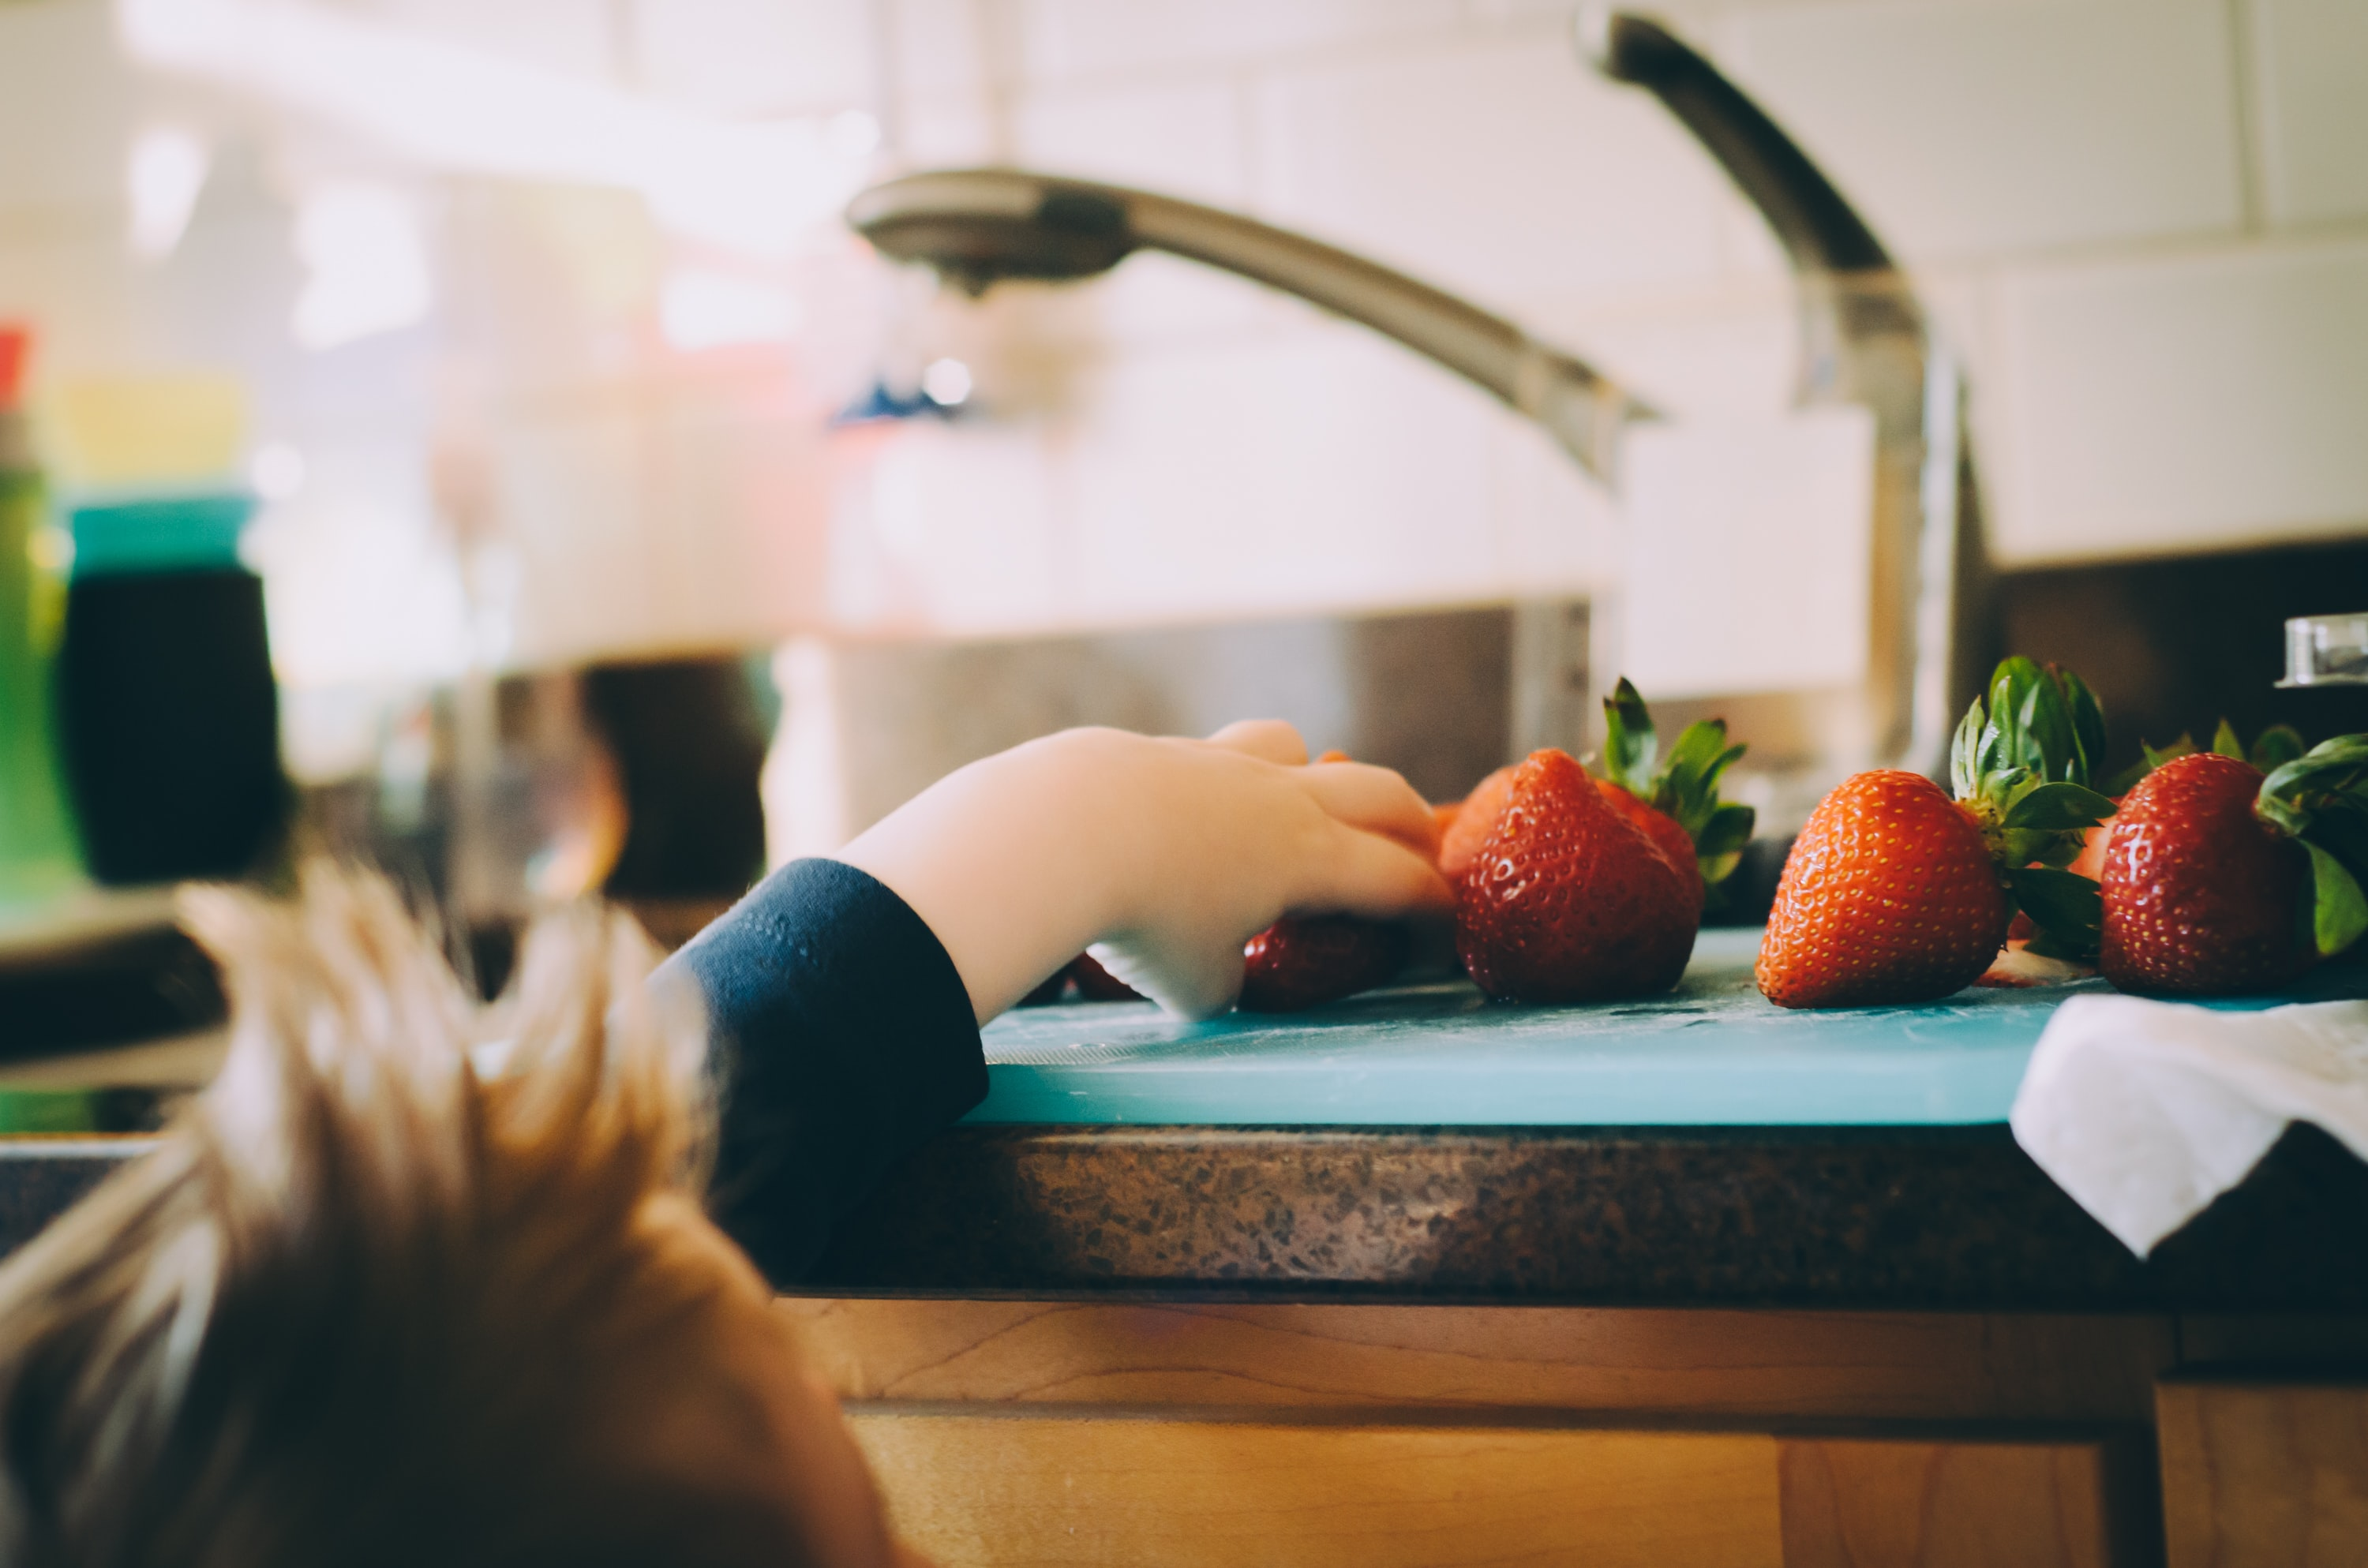 How to Make Your Kitchen More Sanitary and Safe for Kids